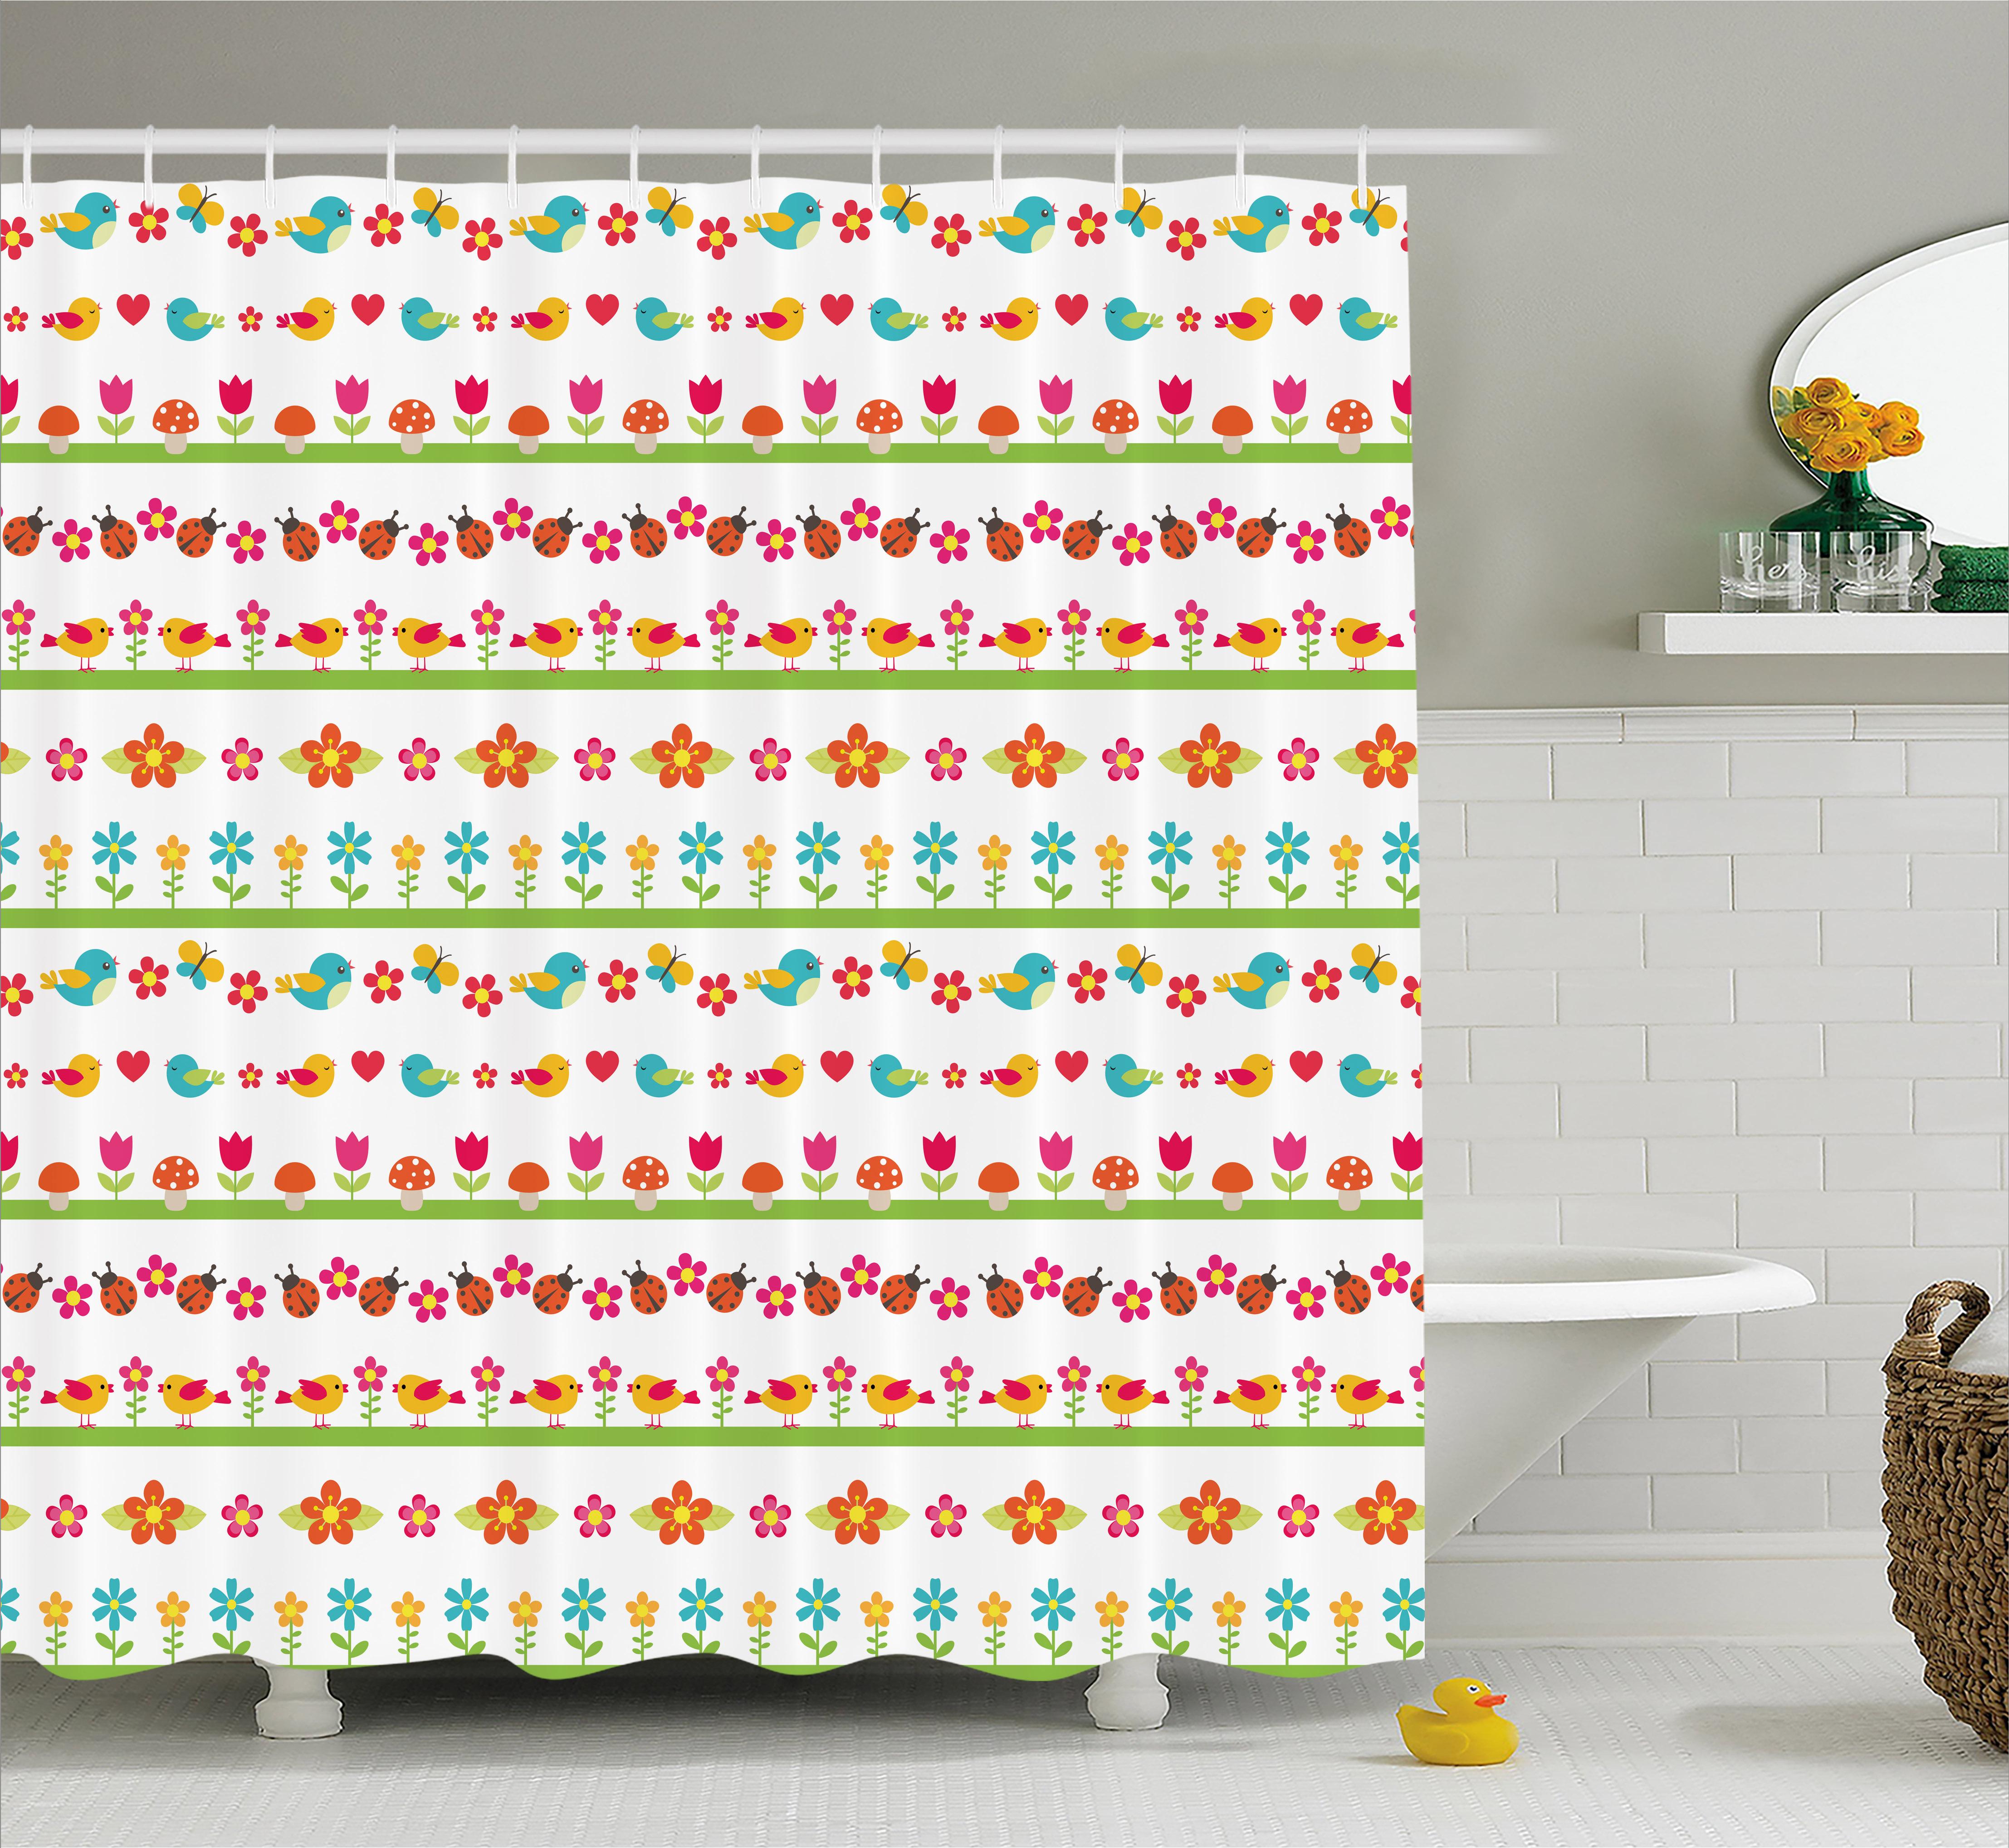 Kids Shower Curtain, Lovely Border Designs with Birds Ladybugs and Summer Flowers Cheering Nature Cartoon, Fabric Bathroom Set with Hooks, 69W X 75L Inches Long, Multicolor, by Ambesonne